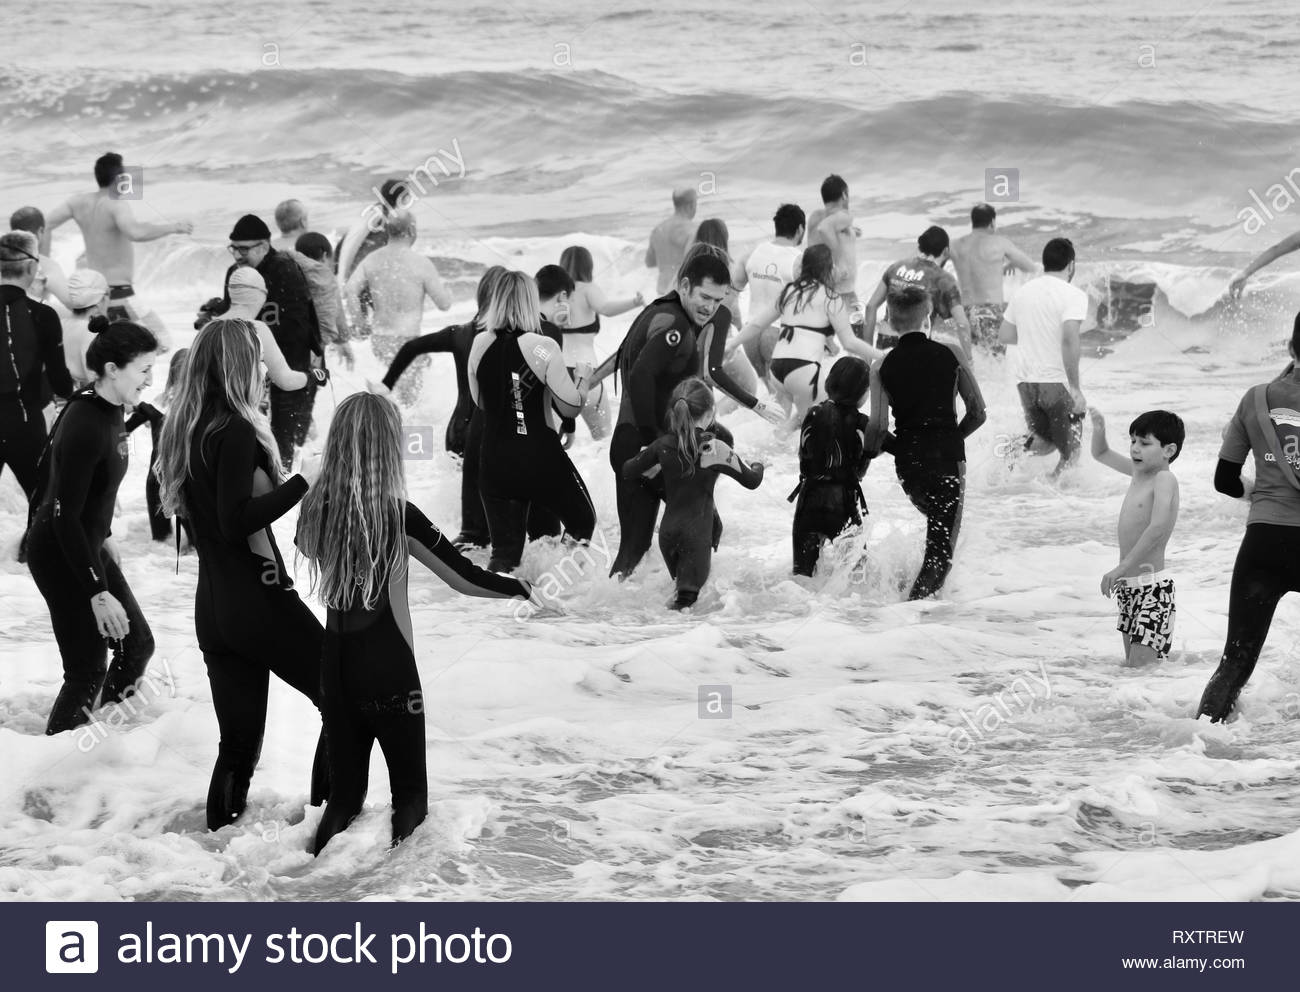 Christchurch Lifeguards New Year's Day Dip - Stock Image